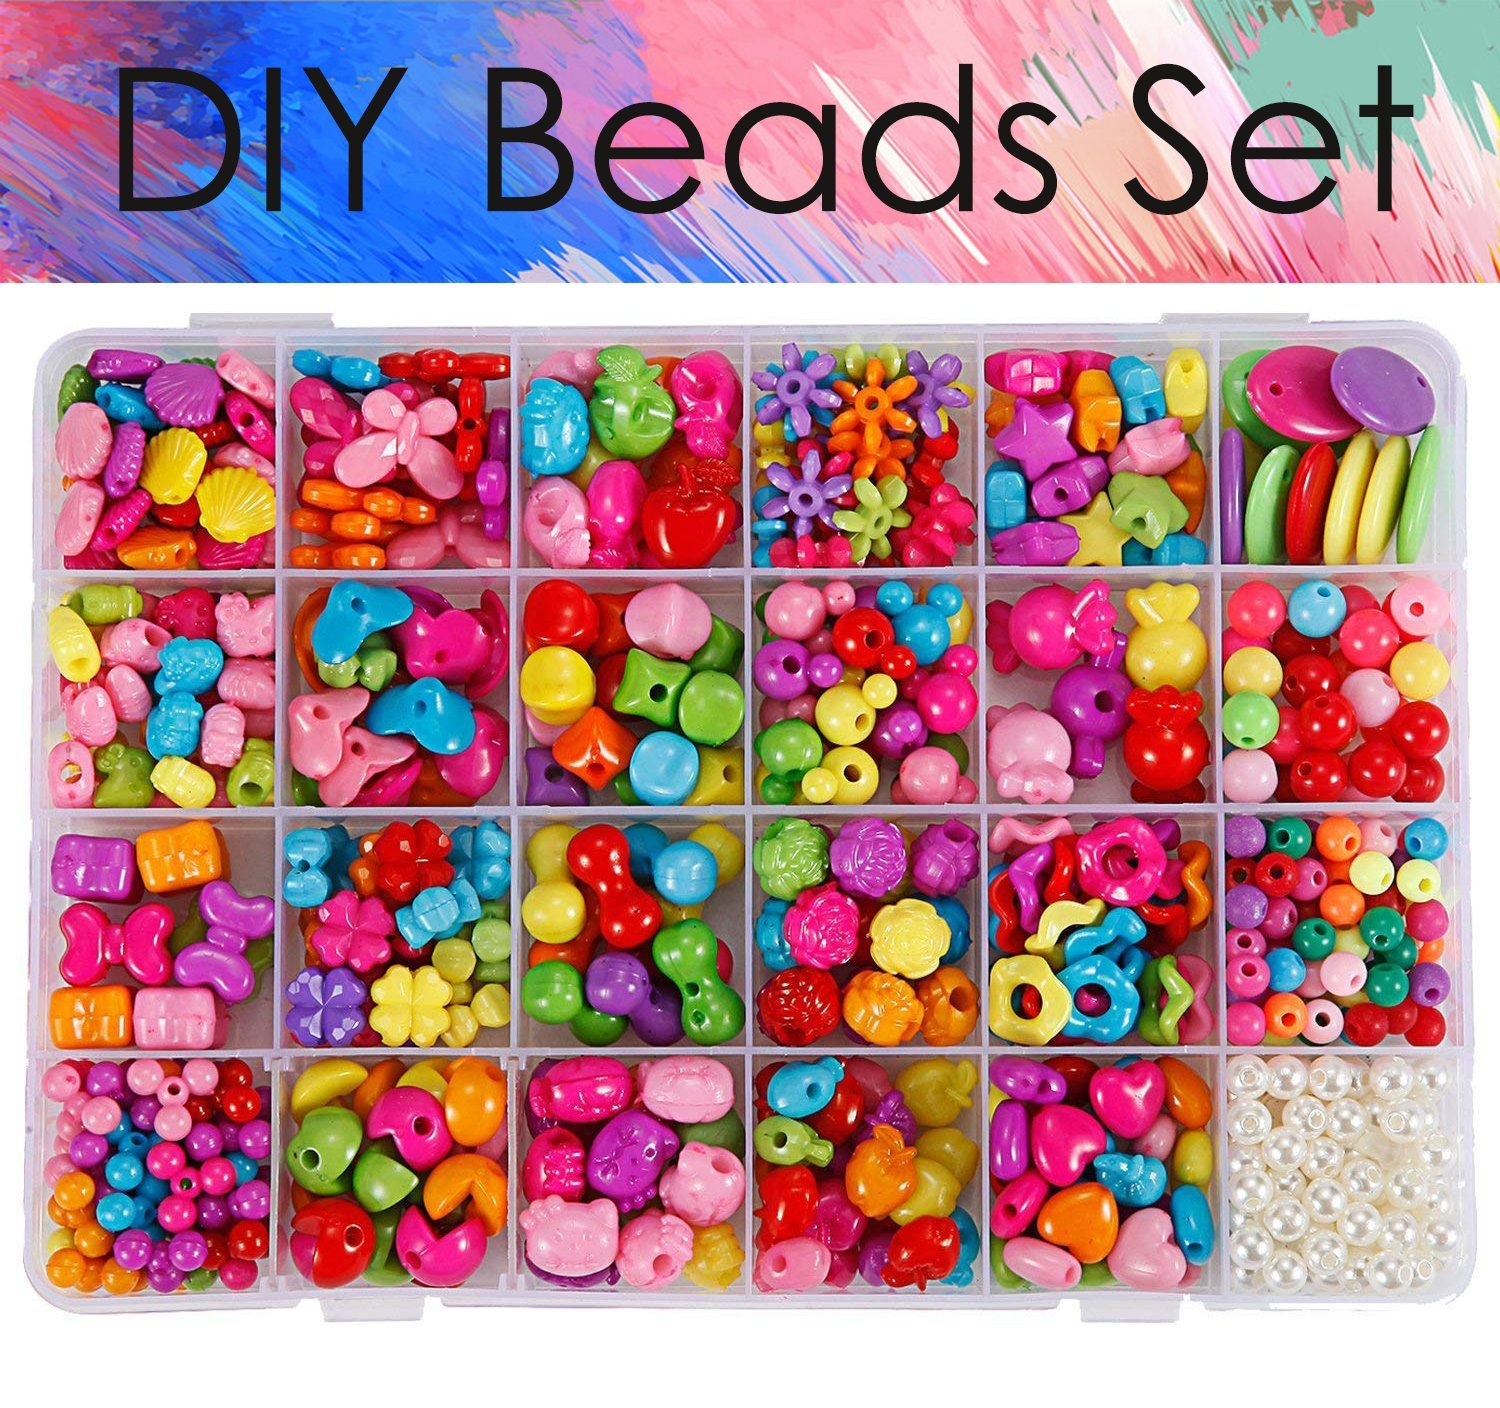 Alphabet Beads 1100pcs Mixed Acrylic Plastic Beads Assorted Color Alphabet Letter A-Z Cube Beads for DIY Bracelets, Necklaces, Key Chains and Kid Jewelry Linkoffice® 4336811887